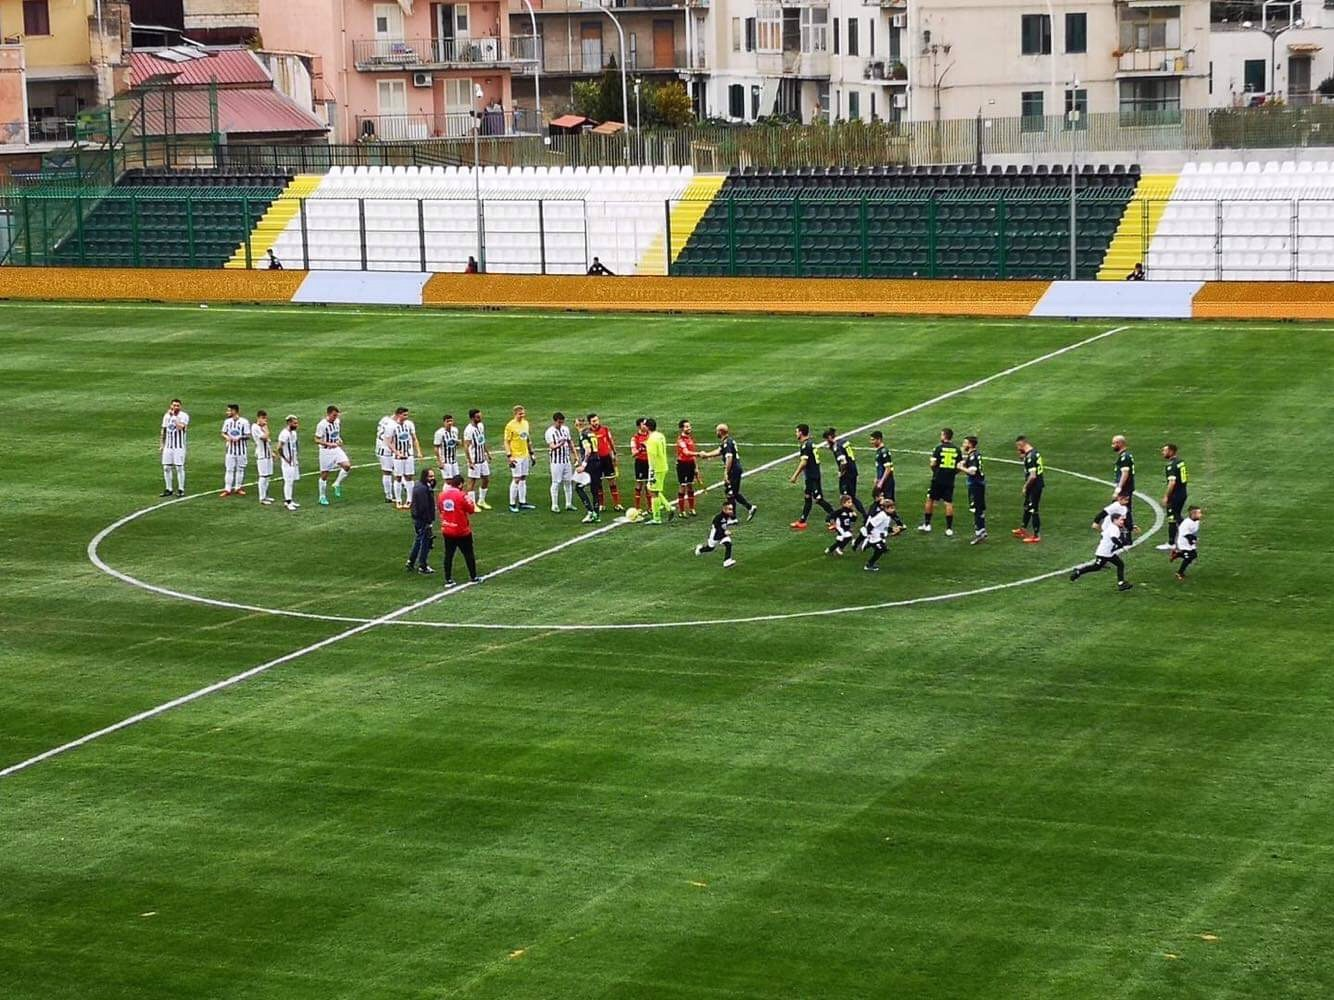 Photo of La Casertana si fa recuperare due gol dalla Sicula: a Lentini termina in pareggio, proteste nel finale